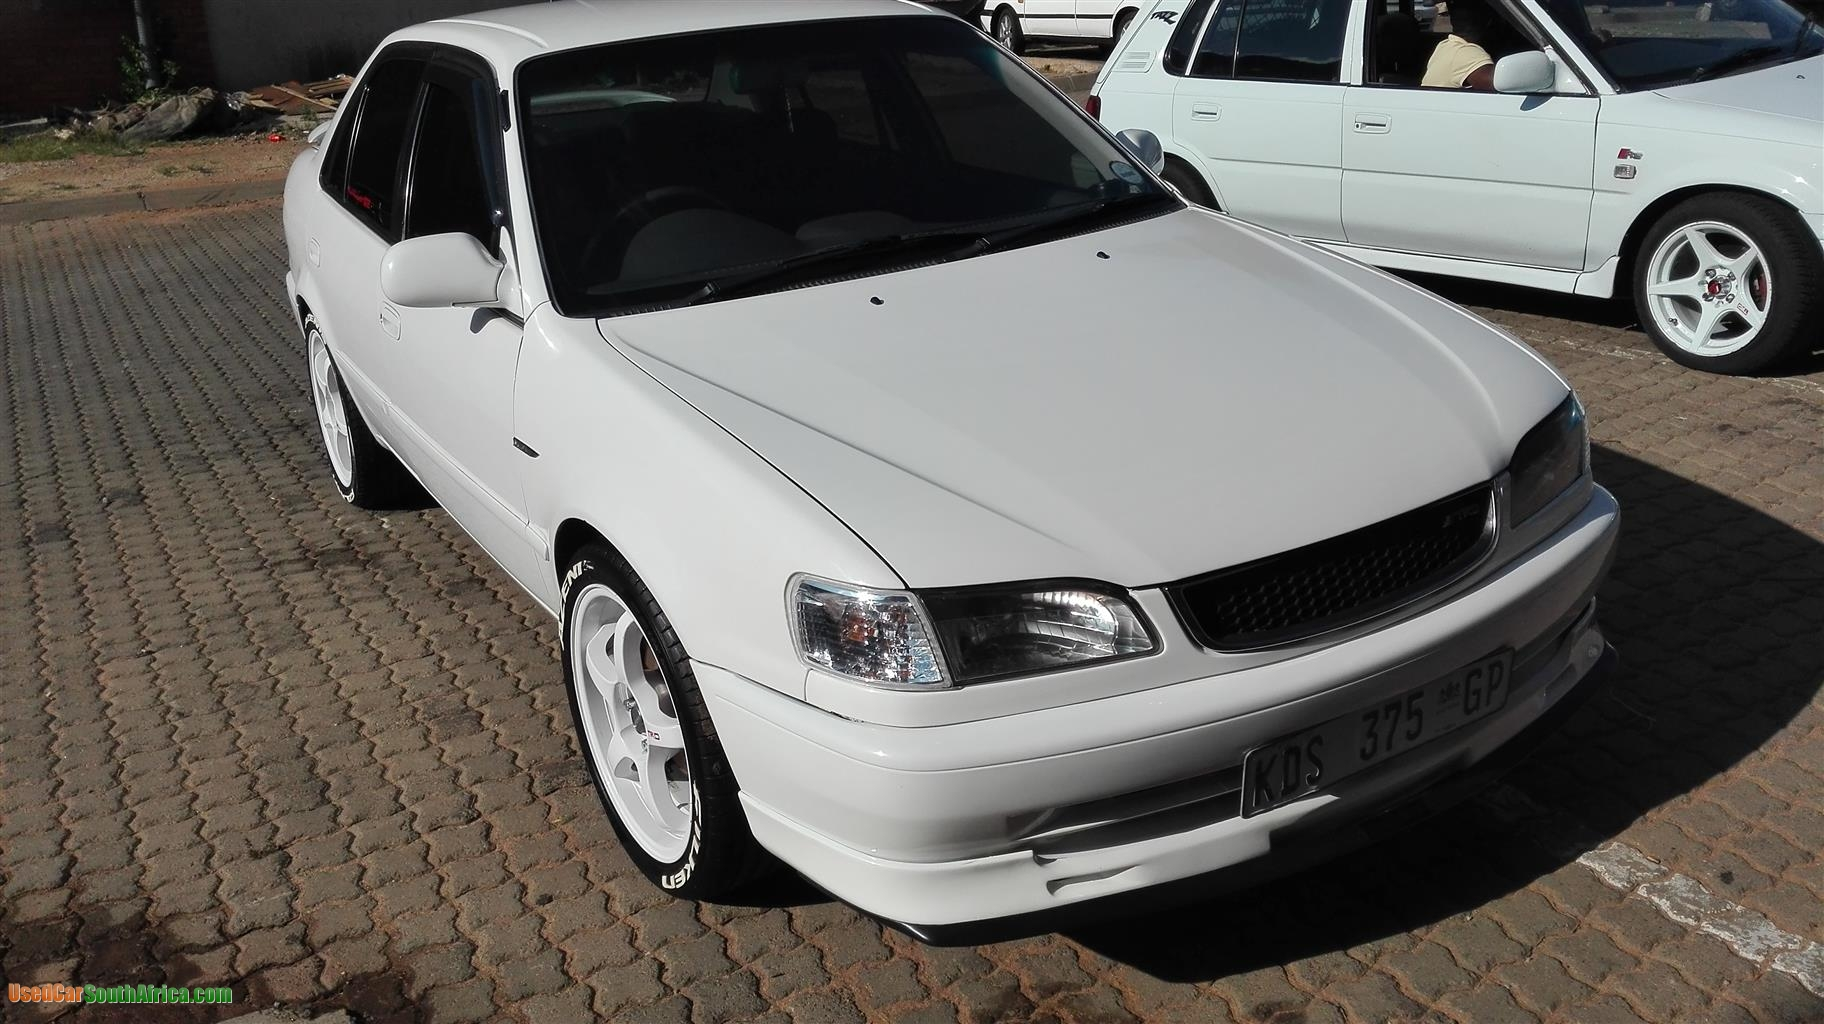 2008 Toyota Corolla For Sale >> 2001 Toyota Corolla 1.6 used car for sale in Johannesburg ...